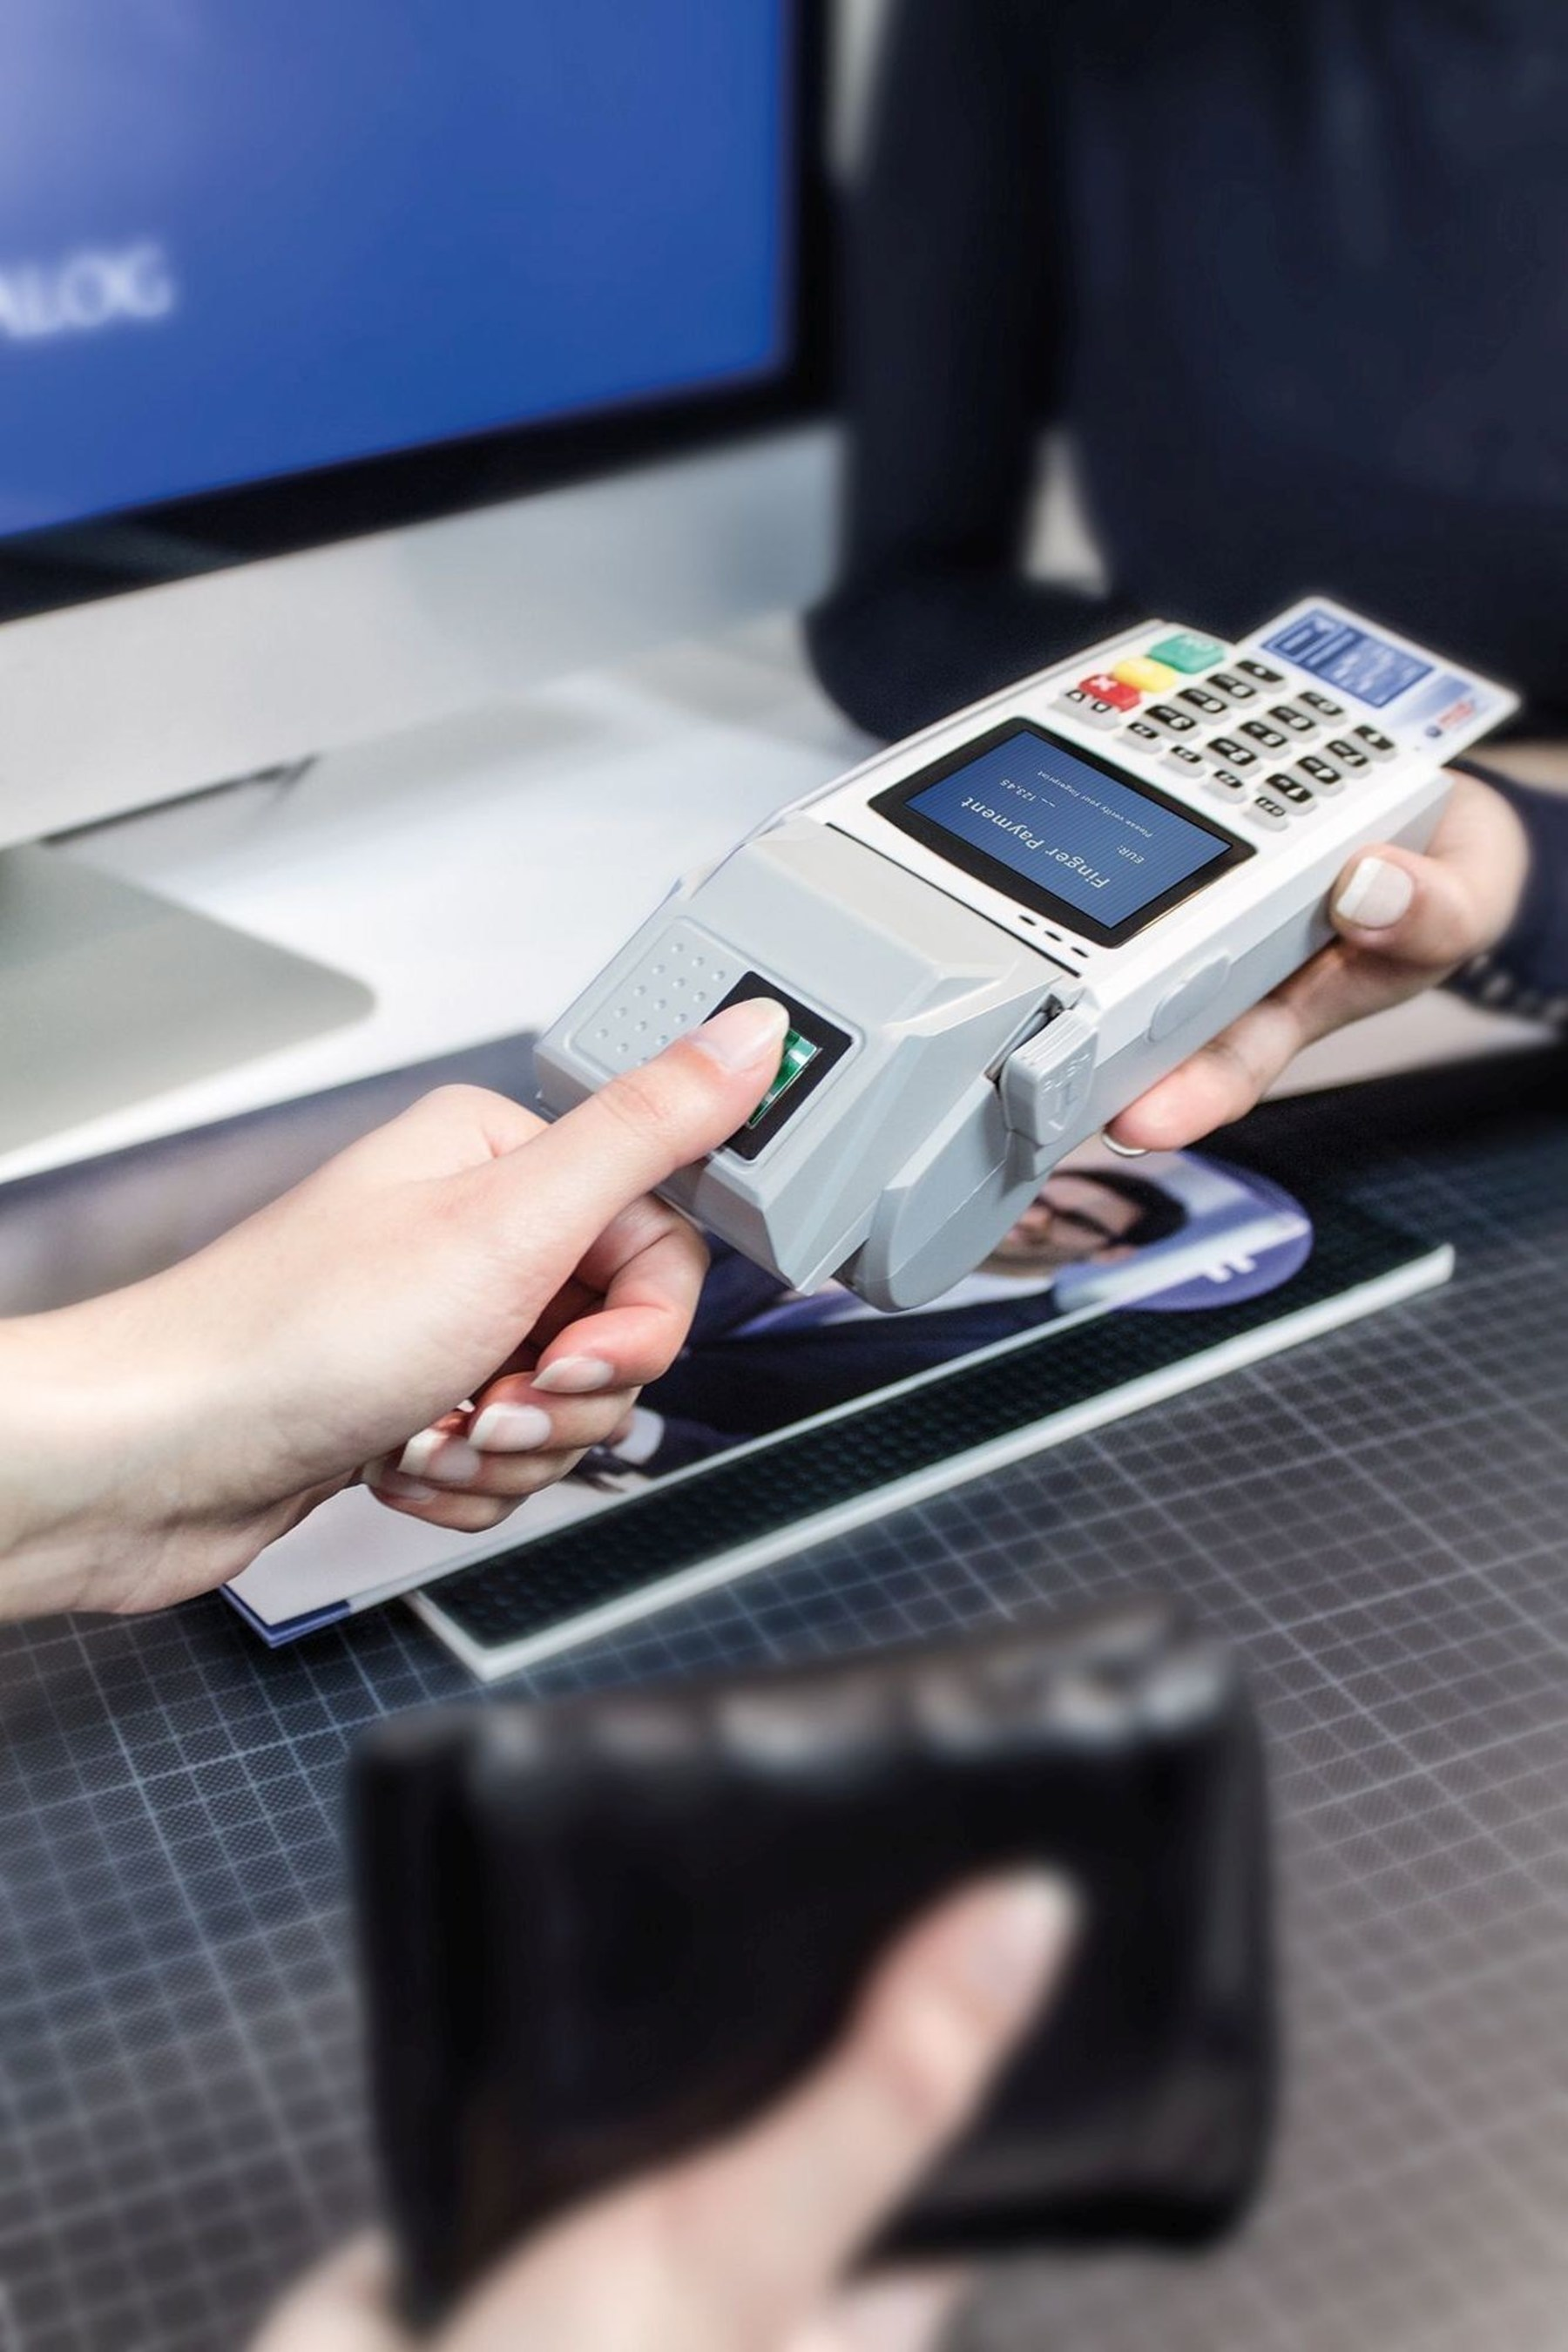 DERMALOG Presents its Latest Biometric Innovations at the Hannover CeBIT Exhibition, 16 - 20 March 2015